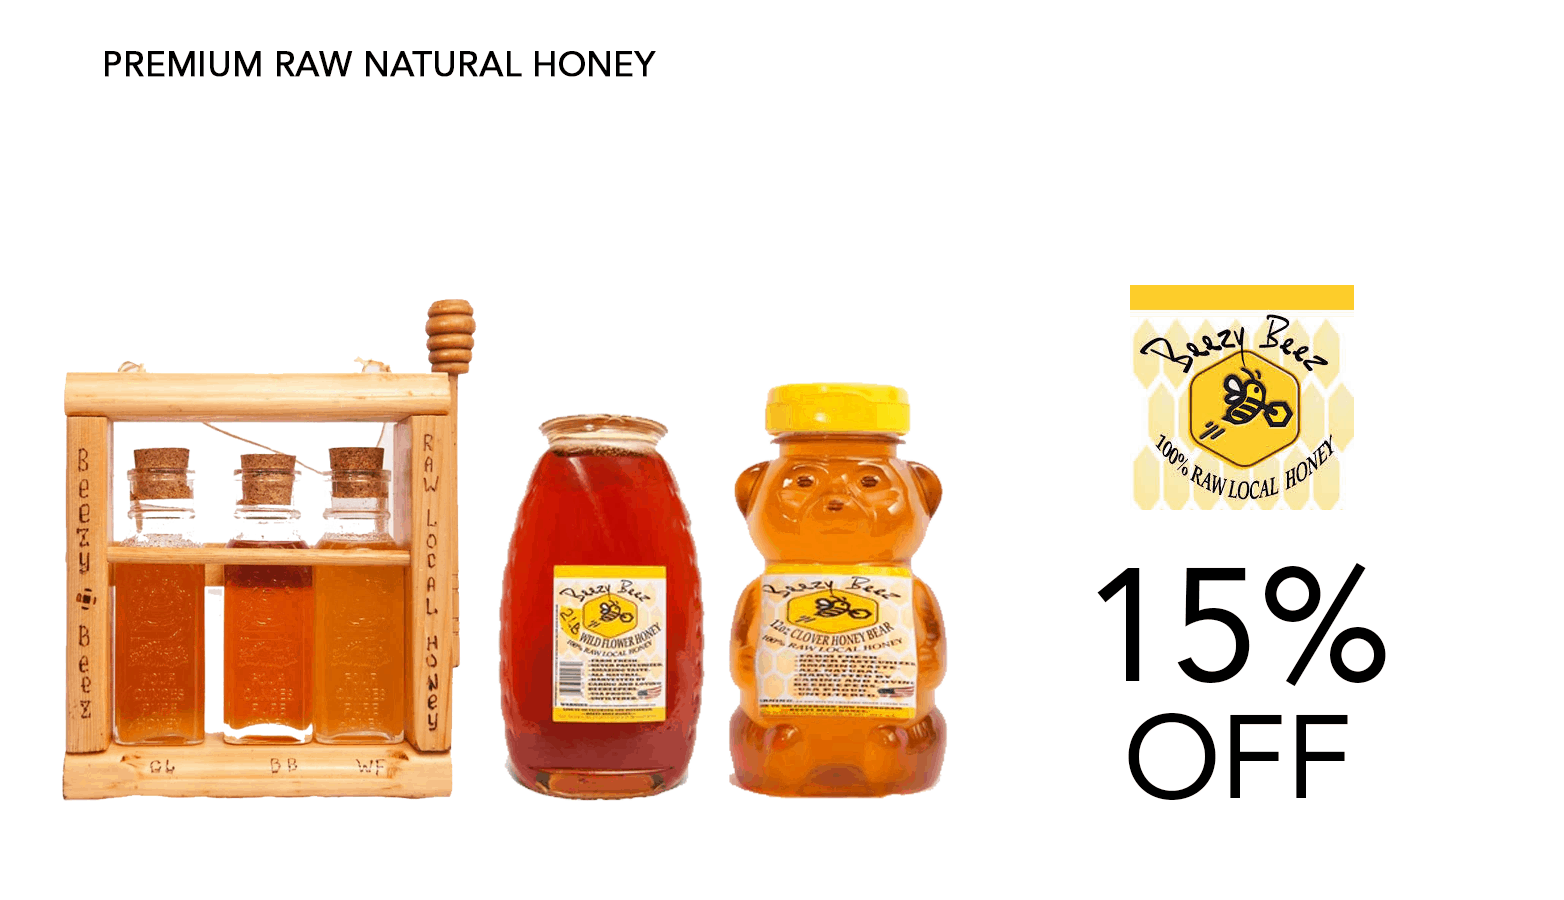 Beezy Bee Honey CBD Coupon Code Website